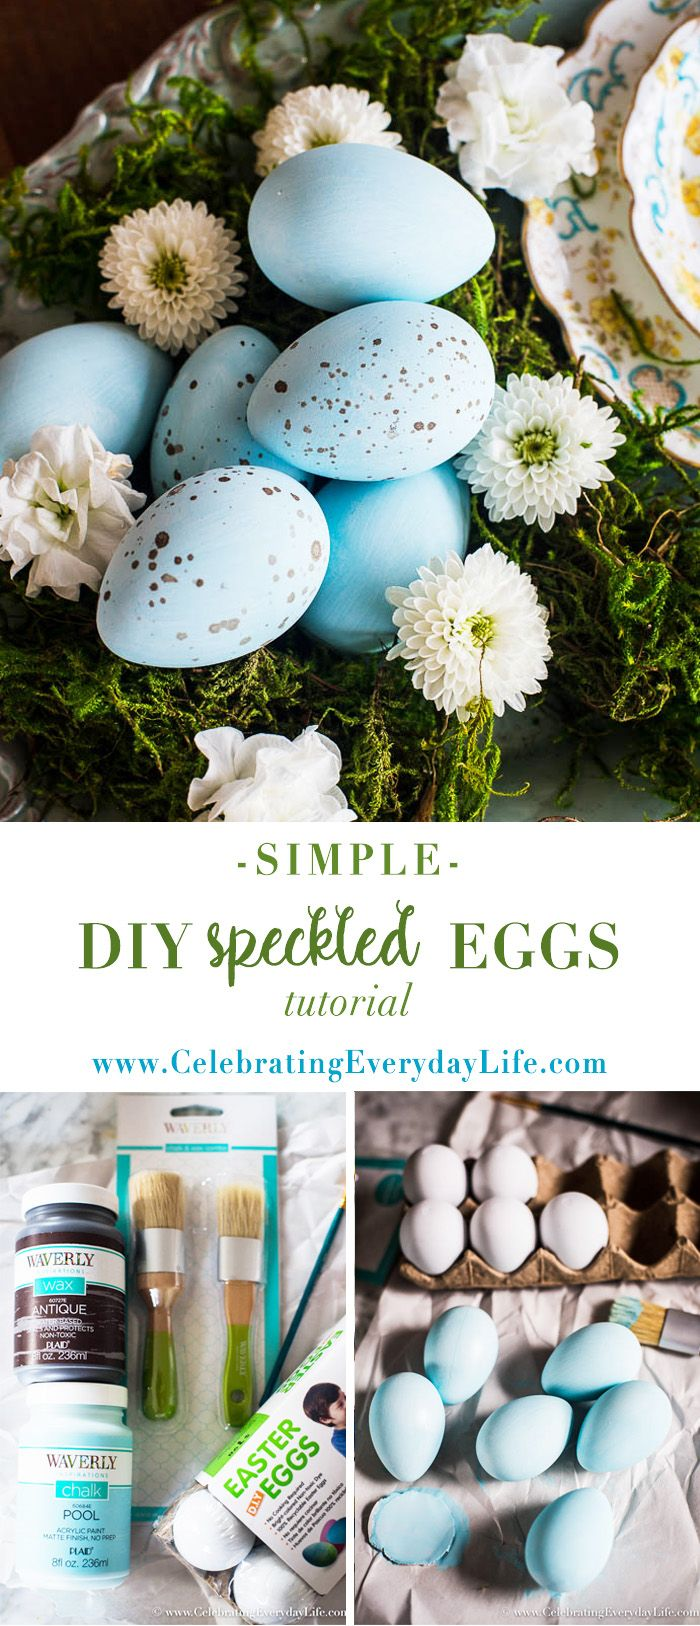 Let's make easy DIY speckled Eggs! Not only is this an easy and cheap Easter craft, it's also pretty Spring decor. Check out the easy tutorial to make some. via @jencarrollva